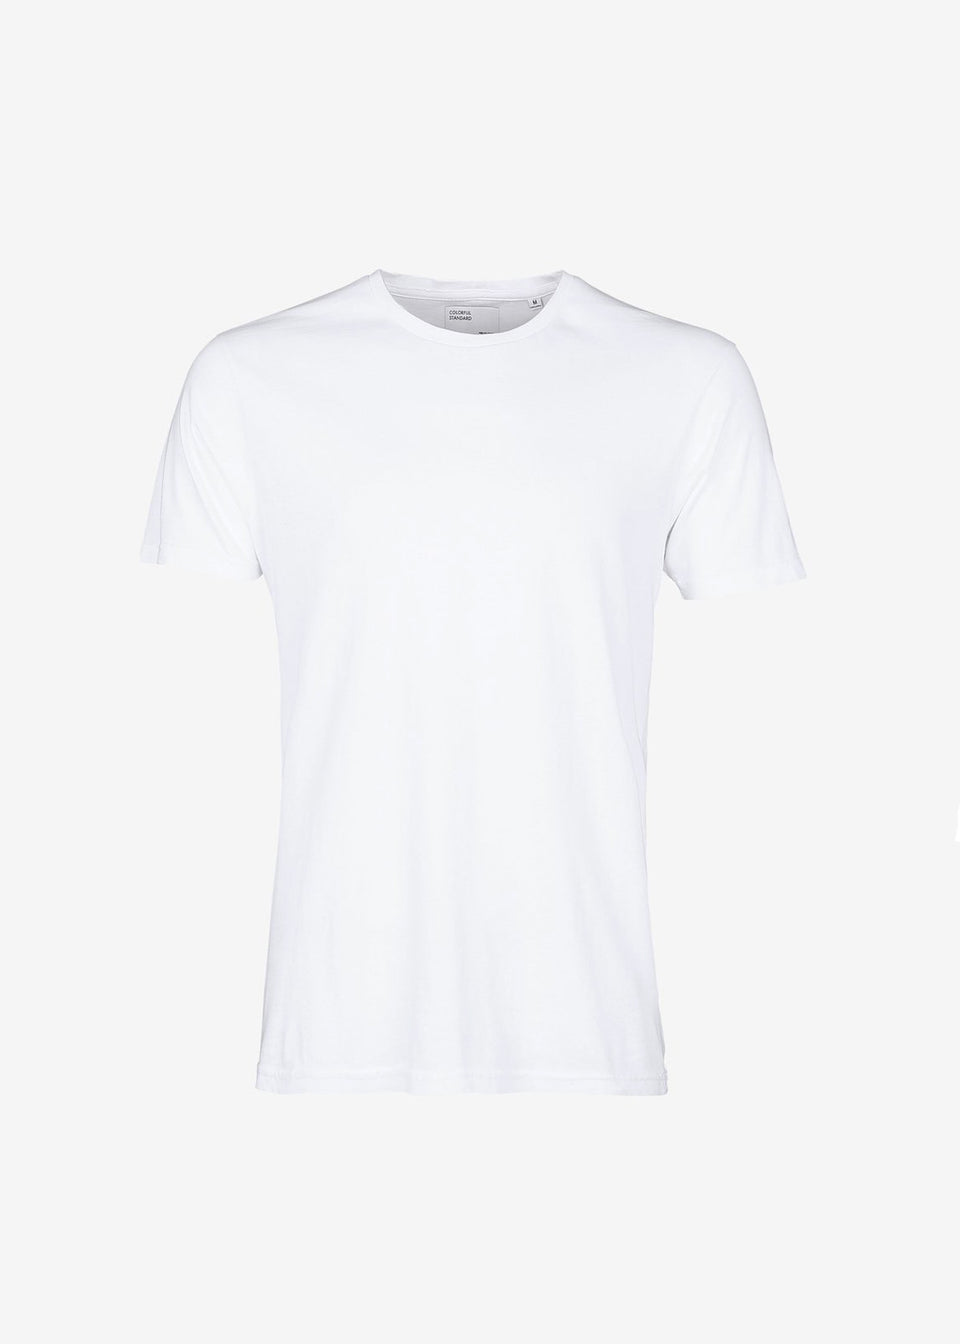 COLORFUL STANDARD • T-shirt Coton bio Blanc